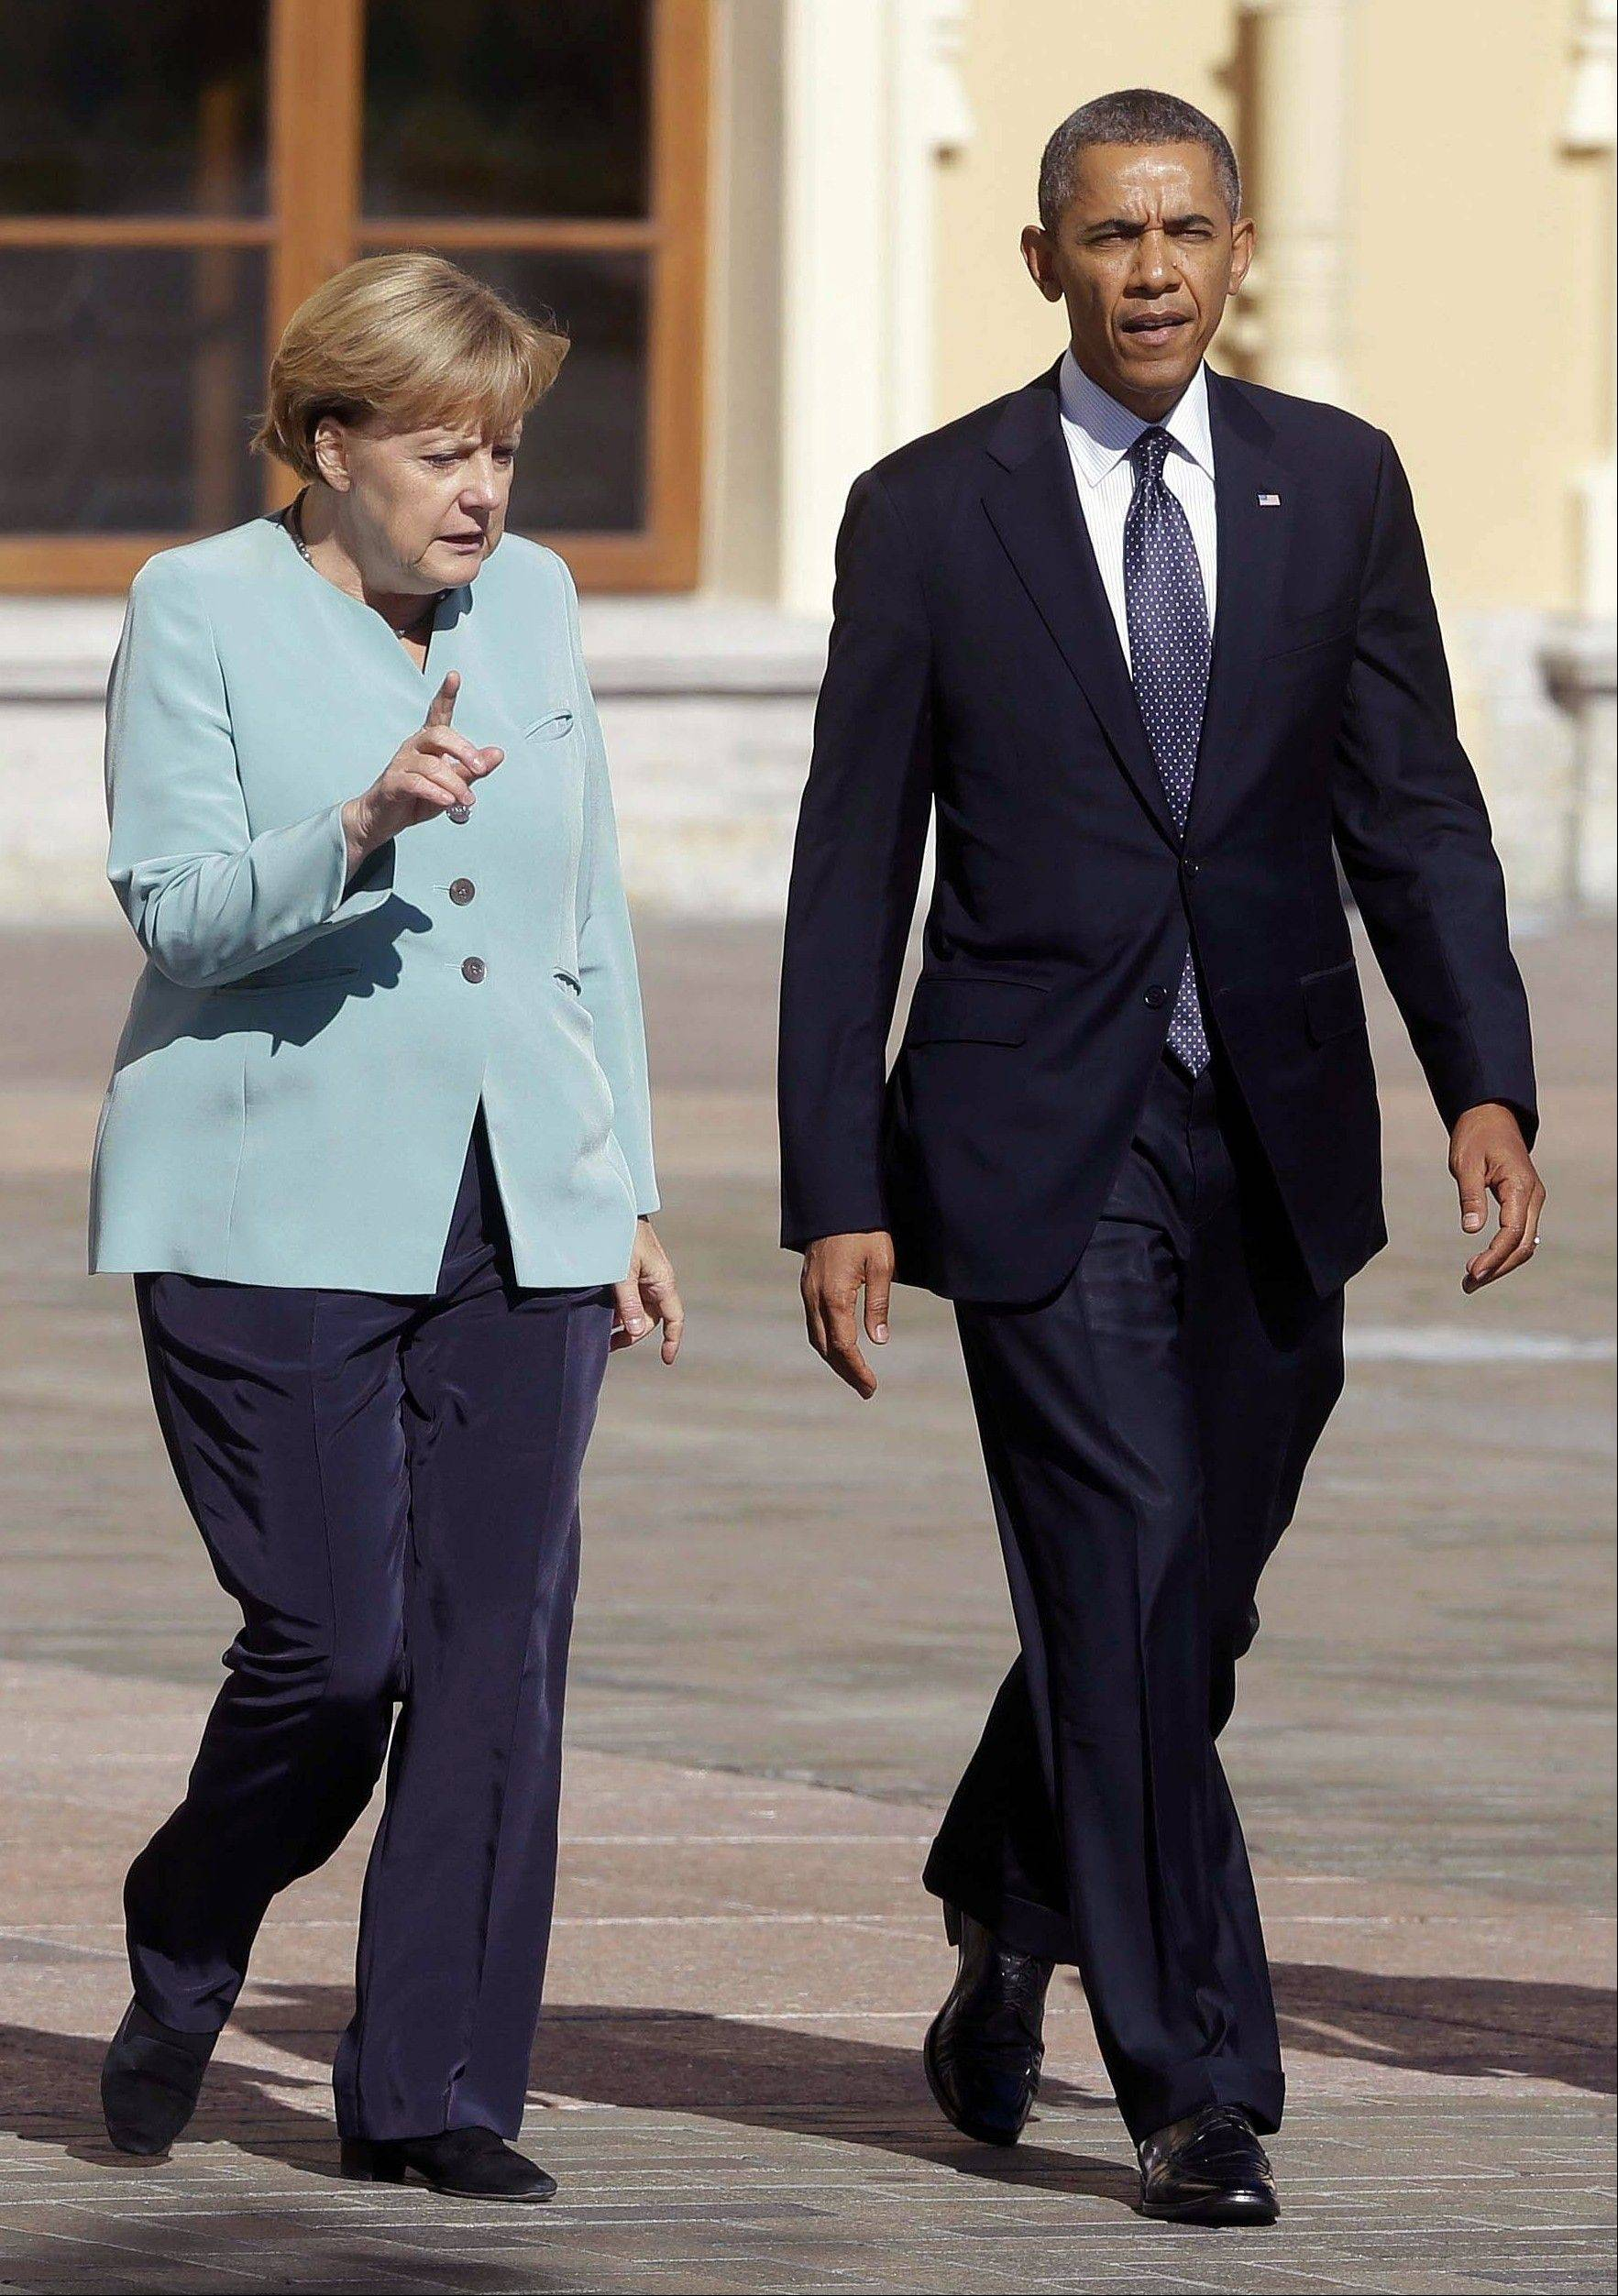 On Sept. 6, President Barack Obama walks with German Chancellor Angela Merkel prior to the group photo at the G-20 summit at the Konstantin Palace in St. Petersburg, Russia.